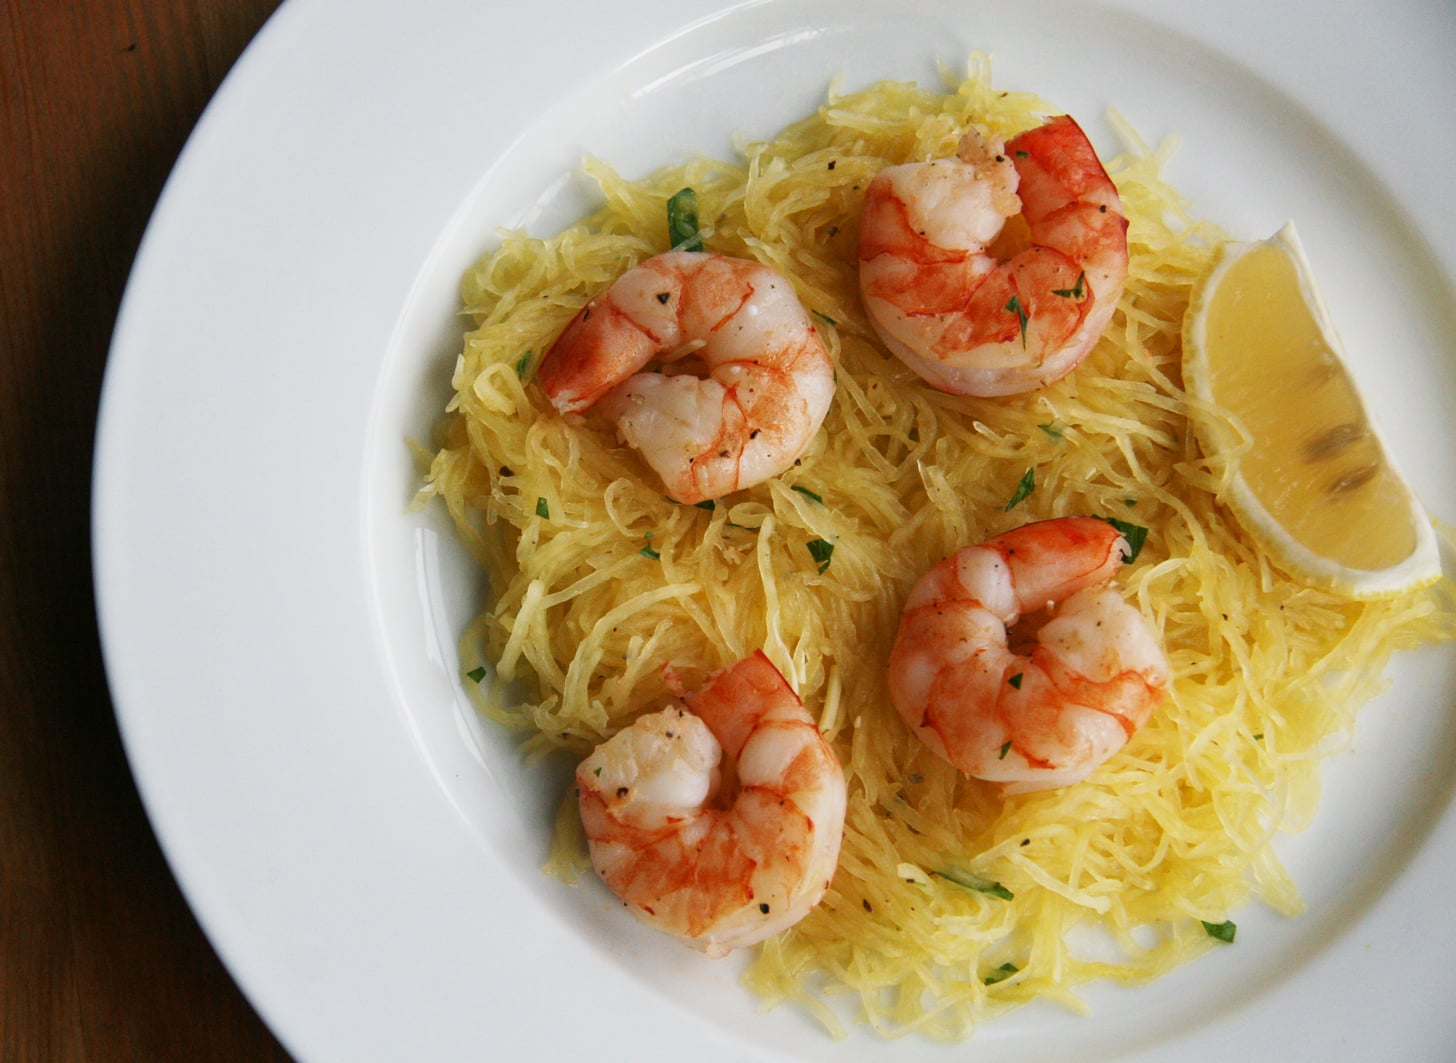 Shrimp and spaghetti squash recipe popsugar fitness for Prawn and spaghetti recipe